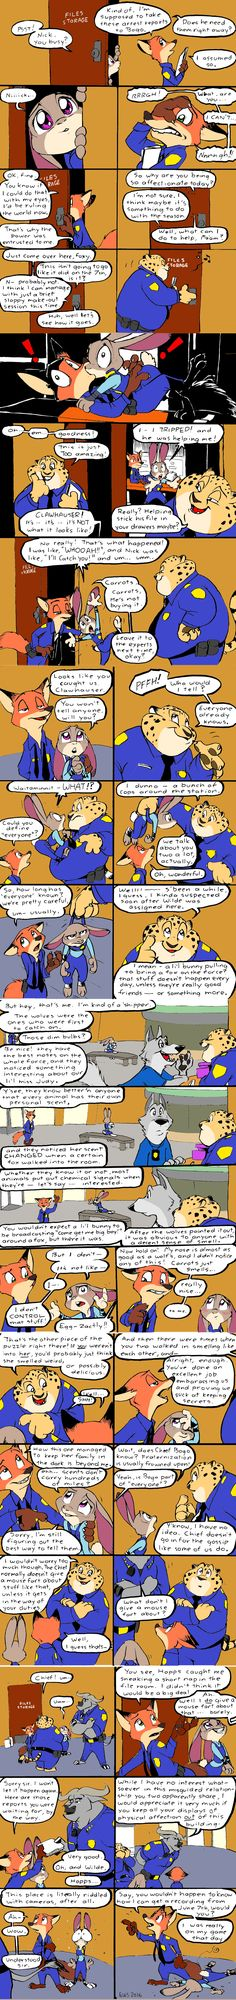 Zootopia Caught by Eric Schwarts - colorized